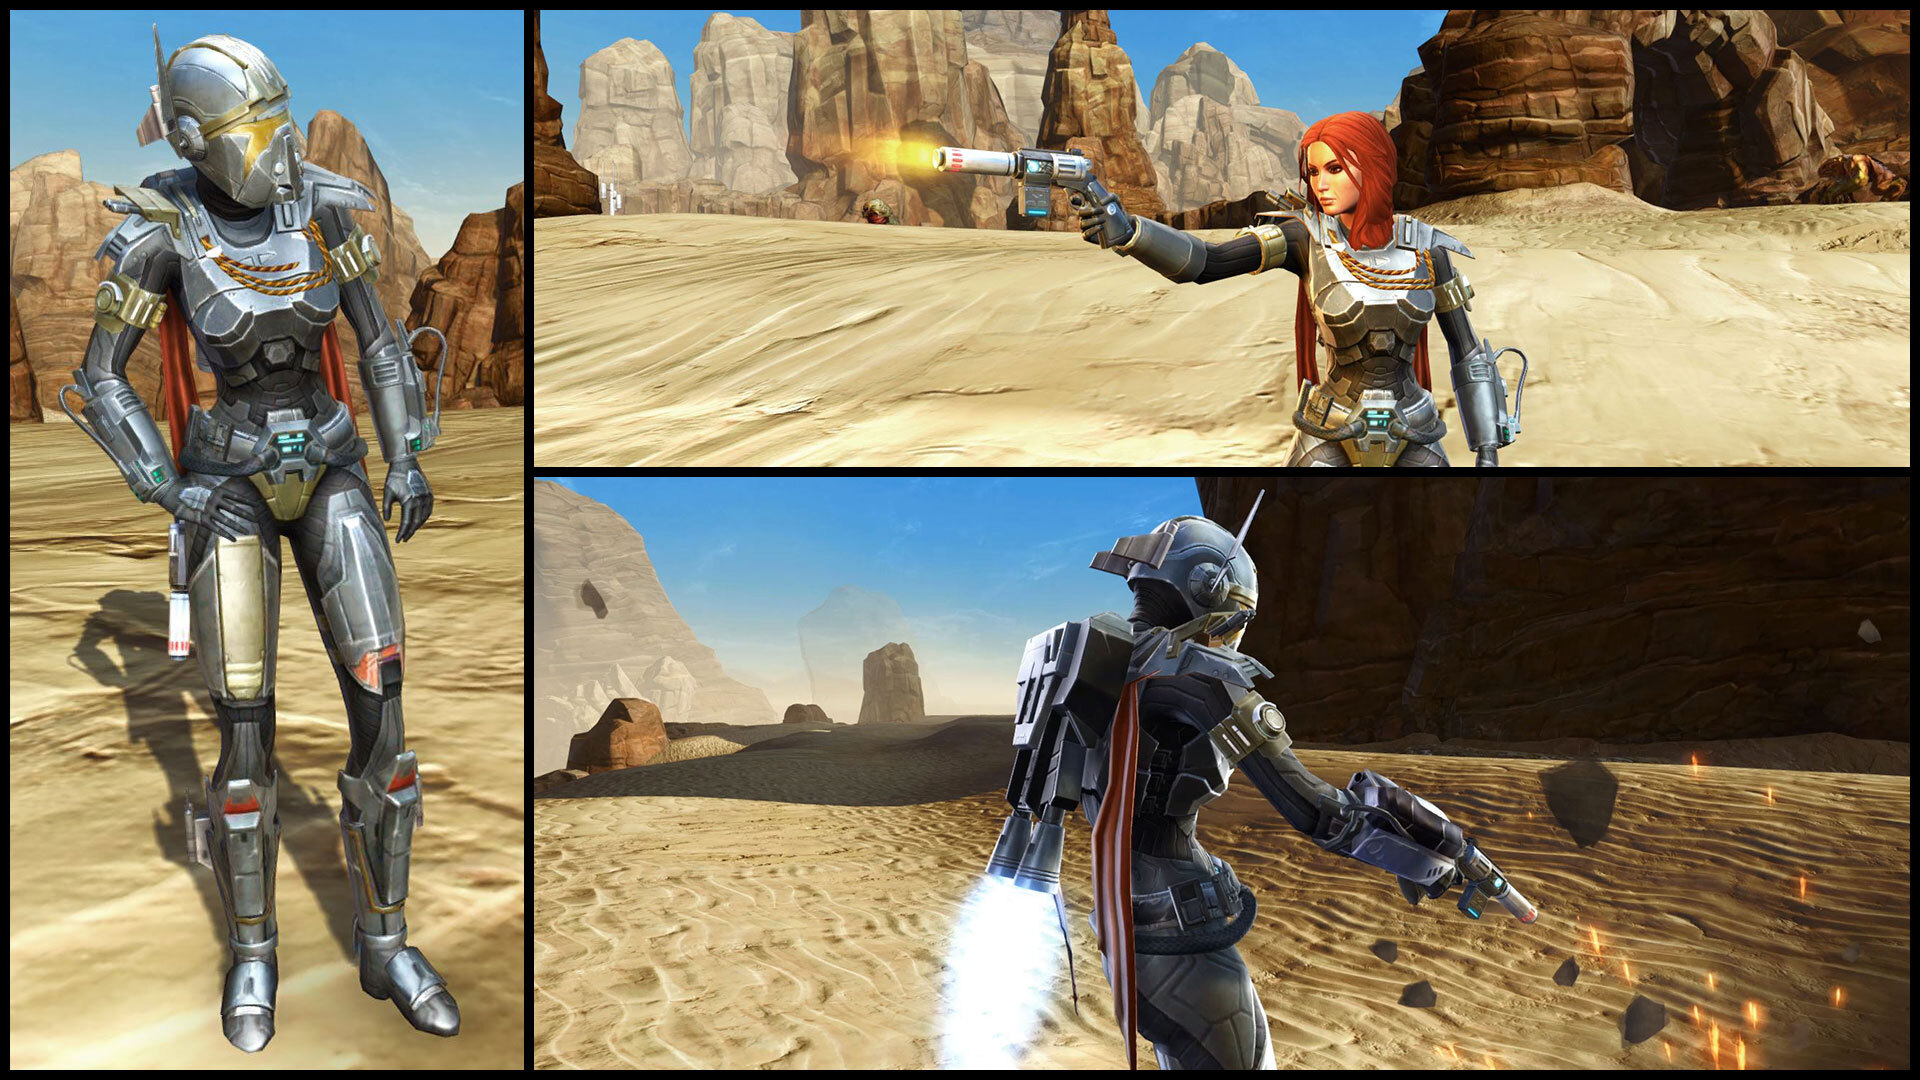 The Old Republic On Twitter Subscribe To Swtor Before October 5th 2020 If You Want To Obtain The Legendary Mandalorian Warrior Shae Vizla As Your Companion More Information Here Https T Co Mejraj6ah9 Https T Co Kriwi2twv2